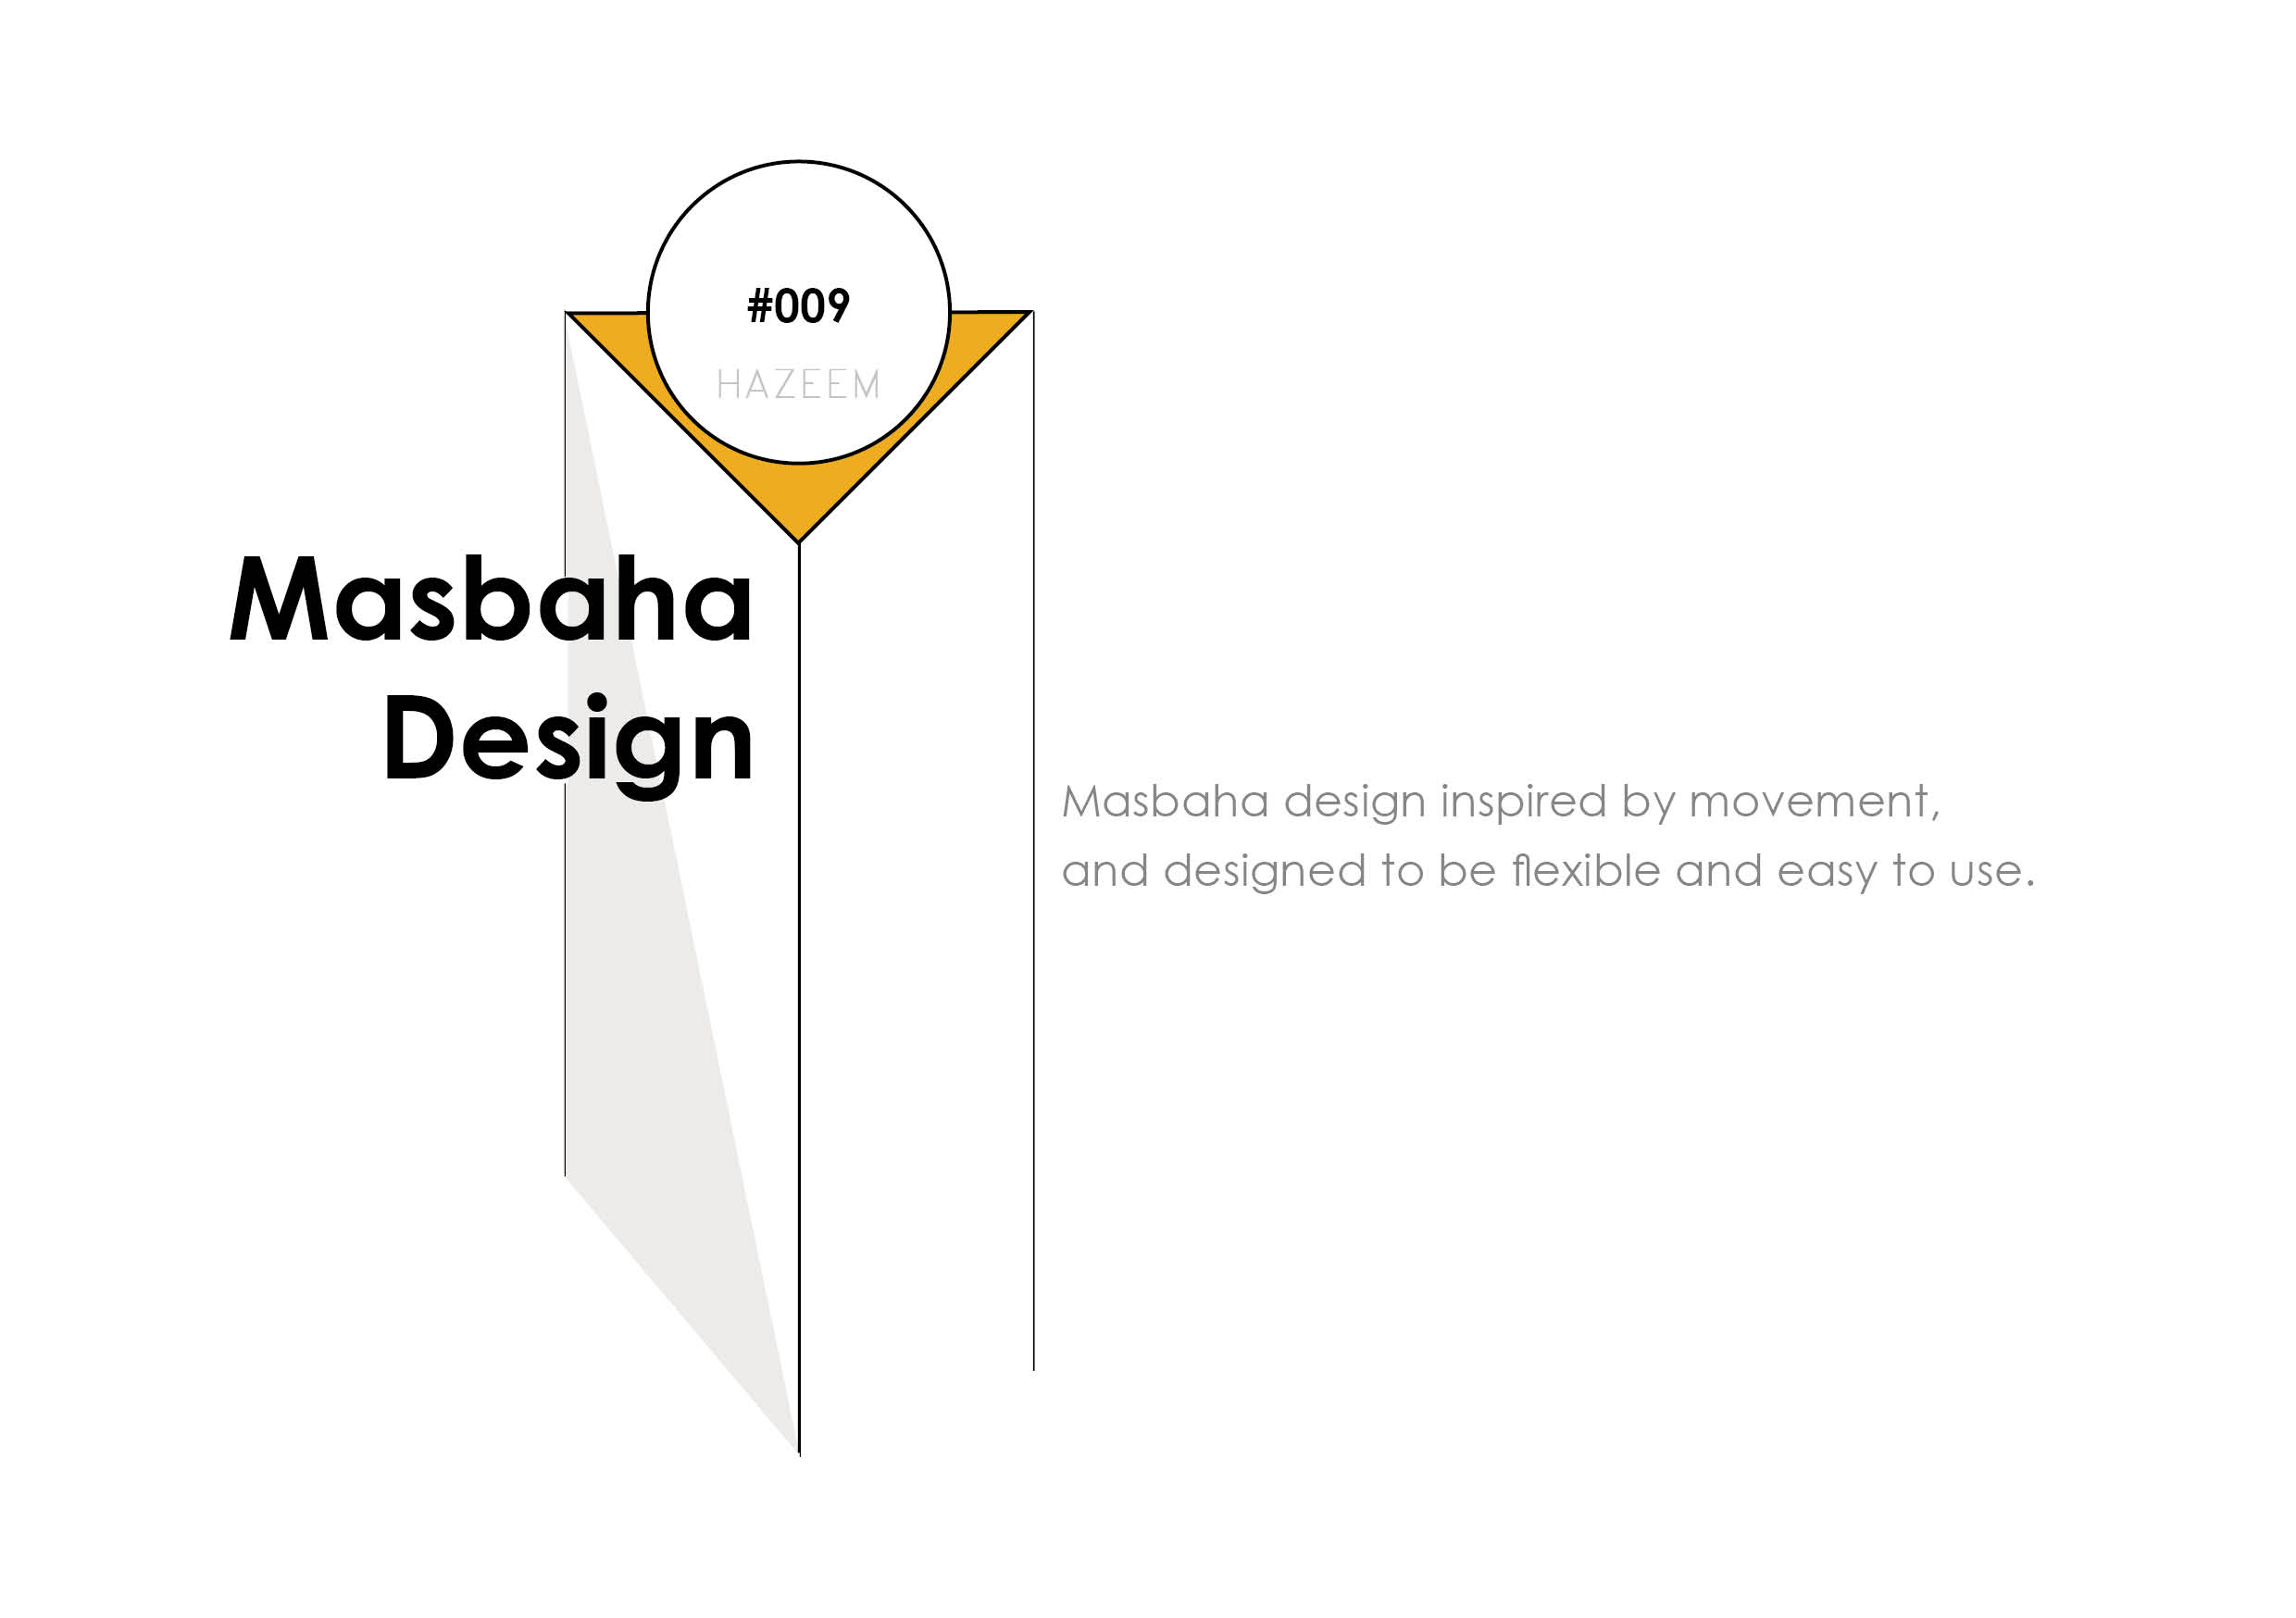 Masbaha Design